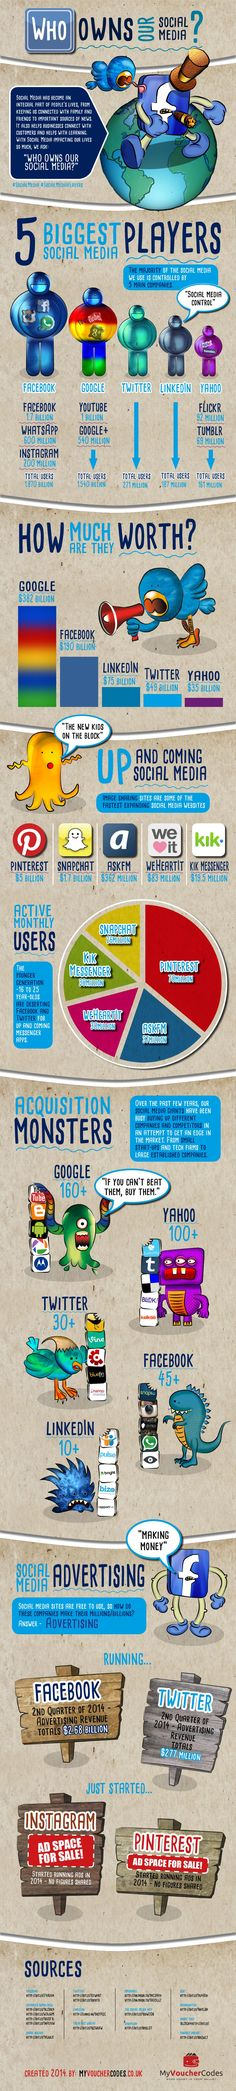 Who Owns Our Social Media in 2014 #Infographic